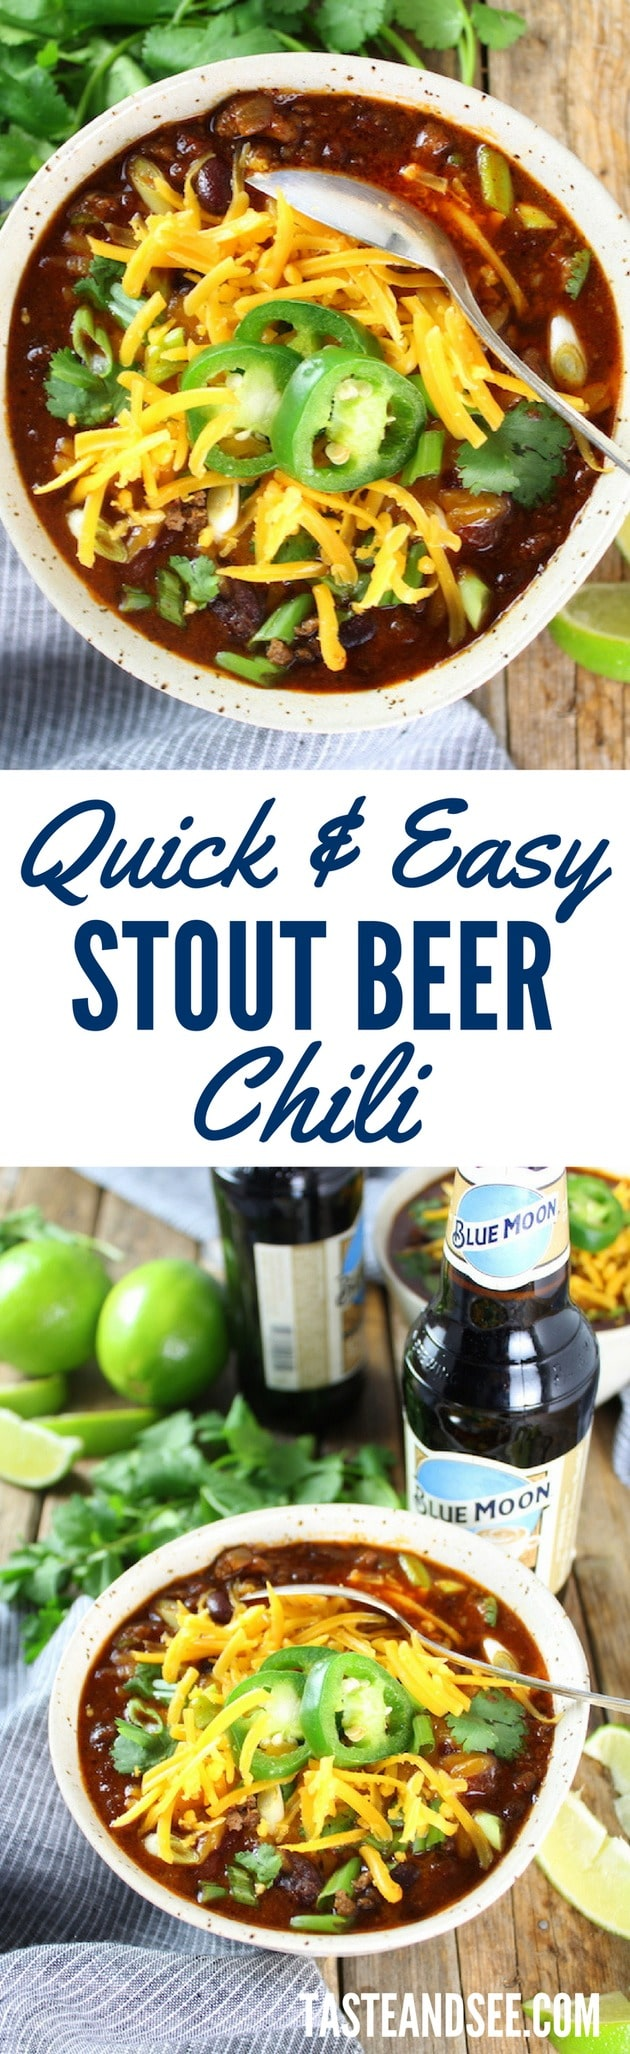 Stout Beer Chili - rich & hearty, a touch of sweet.  Stout beer, kidney beans, ground beef, & molasses. #crockpot #comfortfood #chili #guinness #tasteandsee  ||   https://tasteandsee.com ||